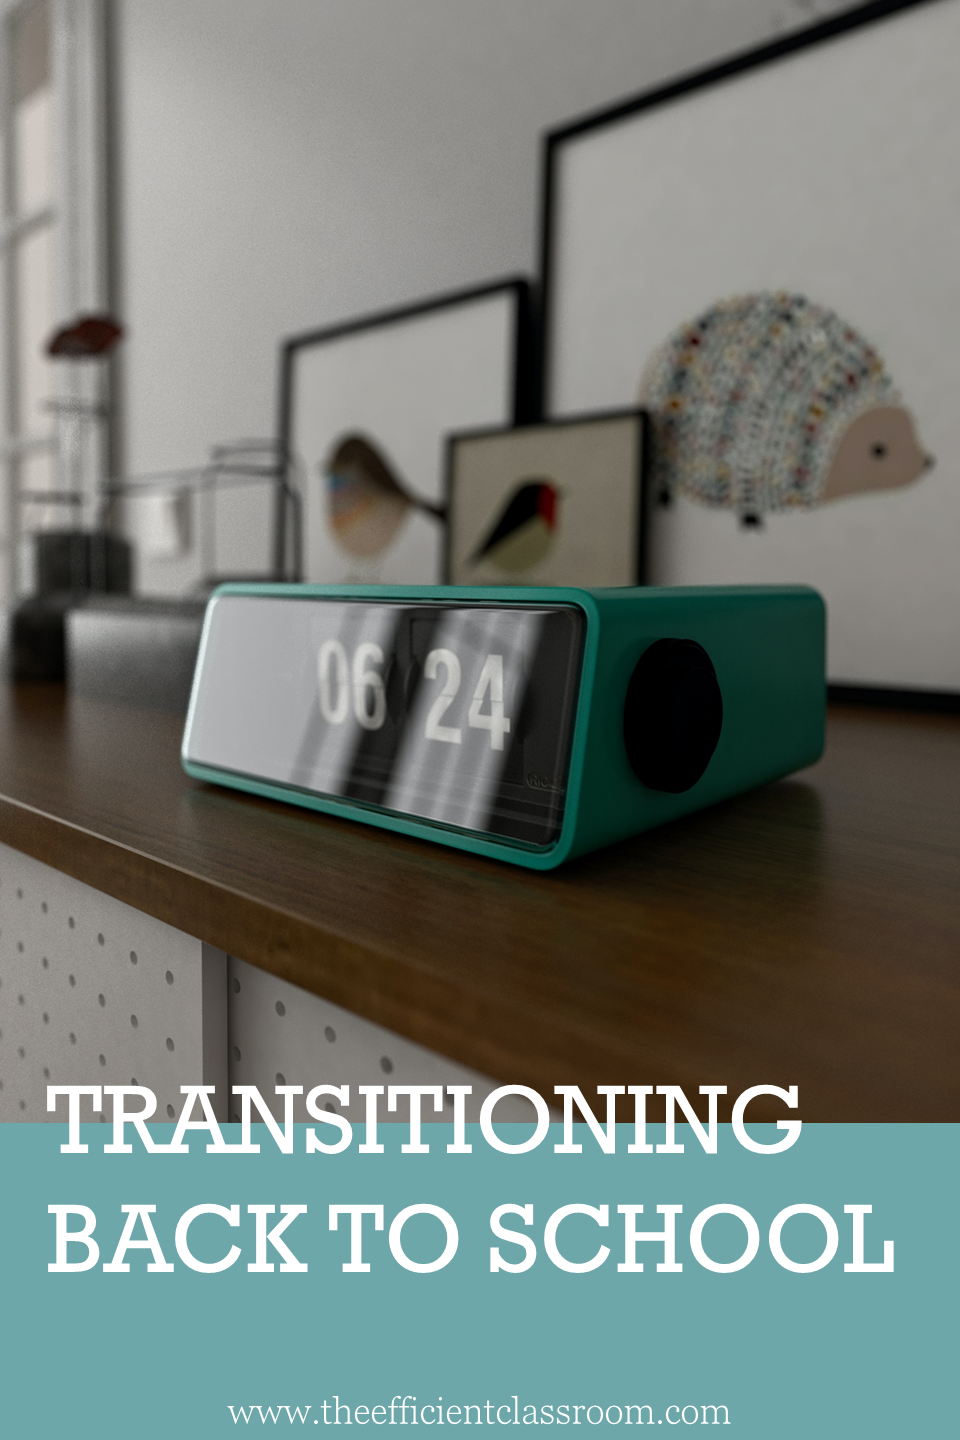 Transitioning Back to School for Teachers